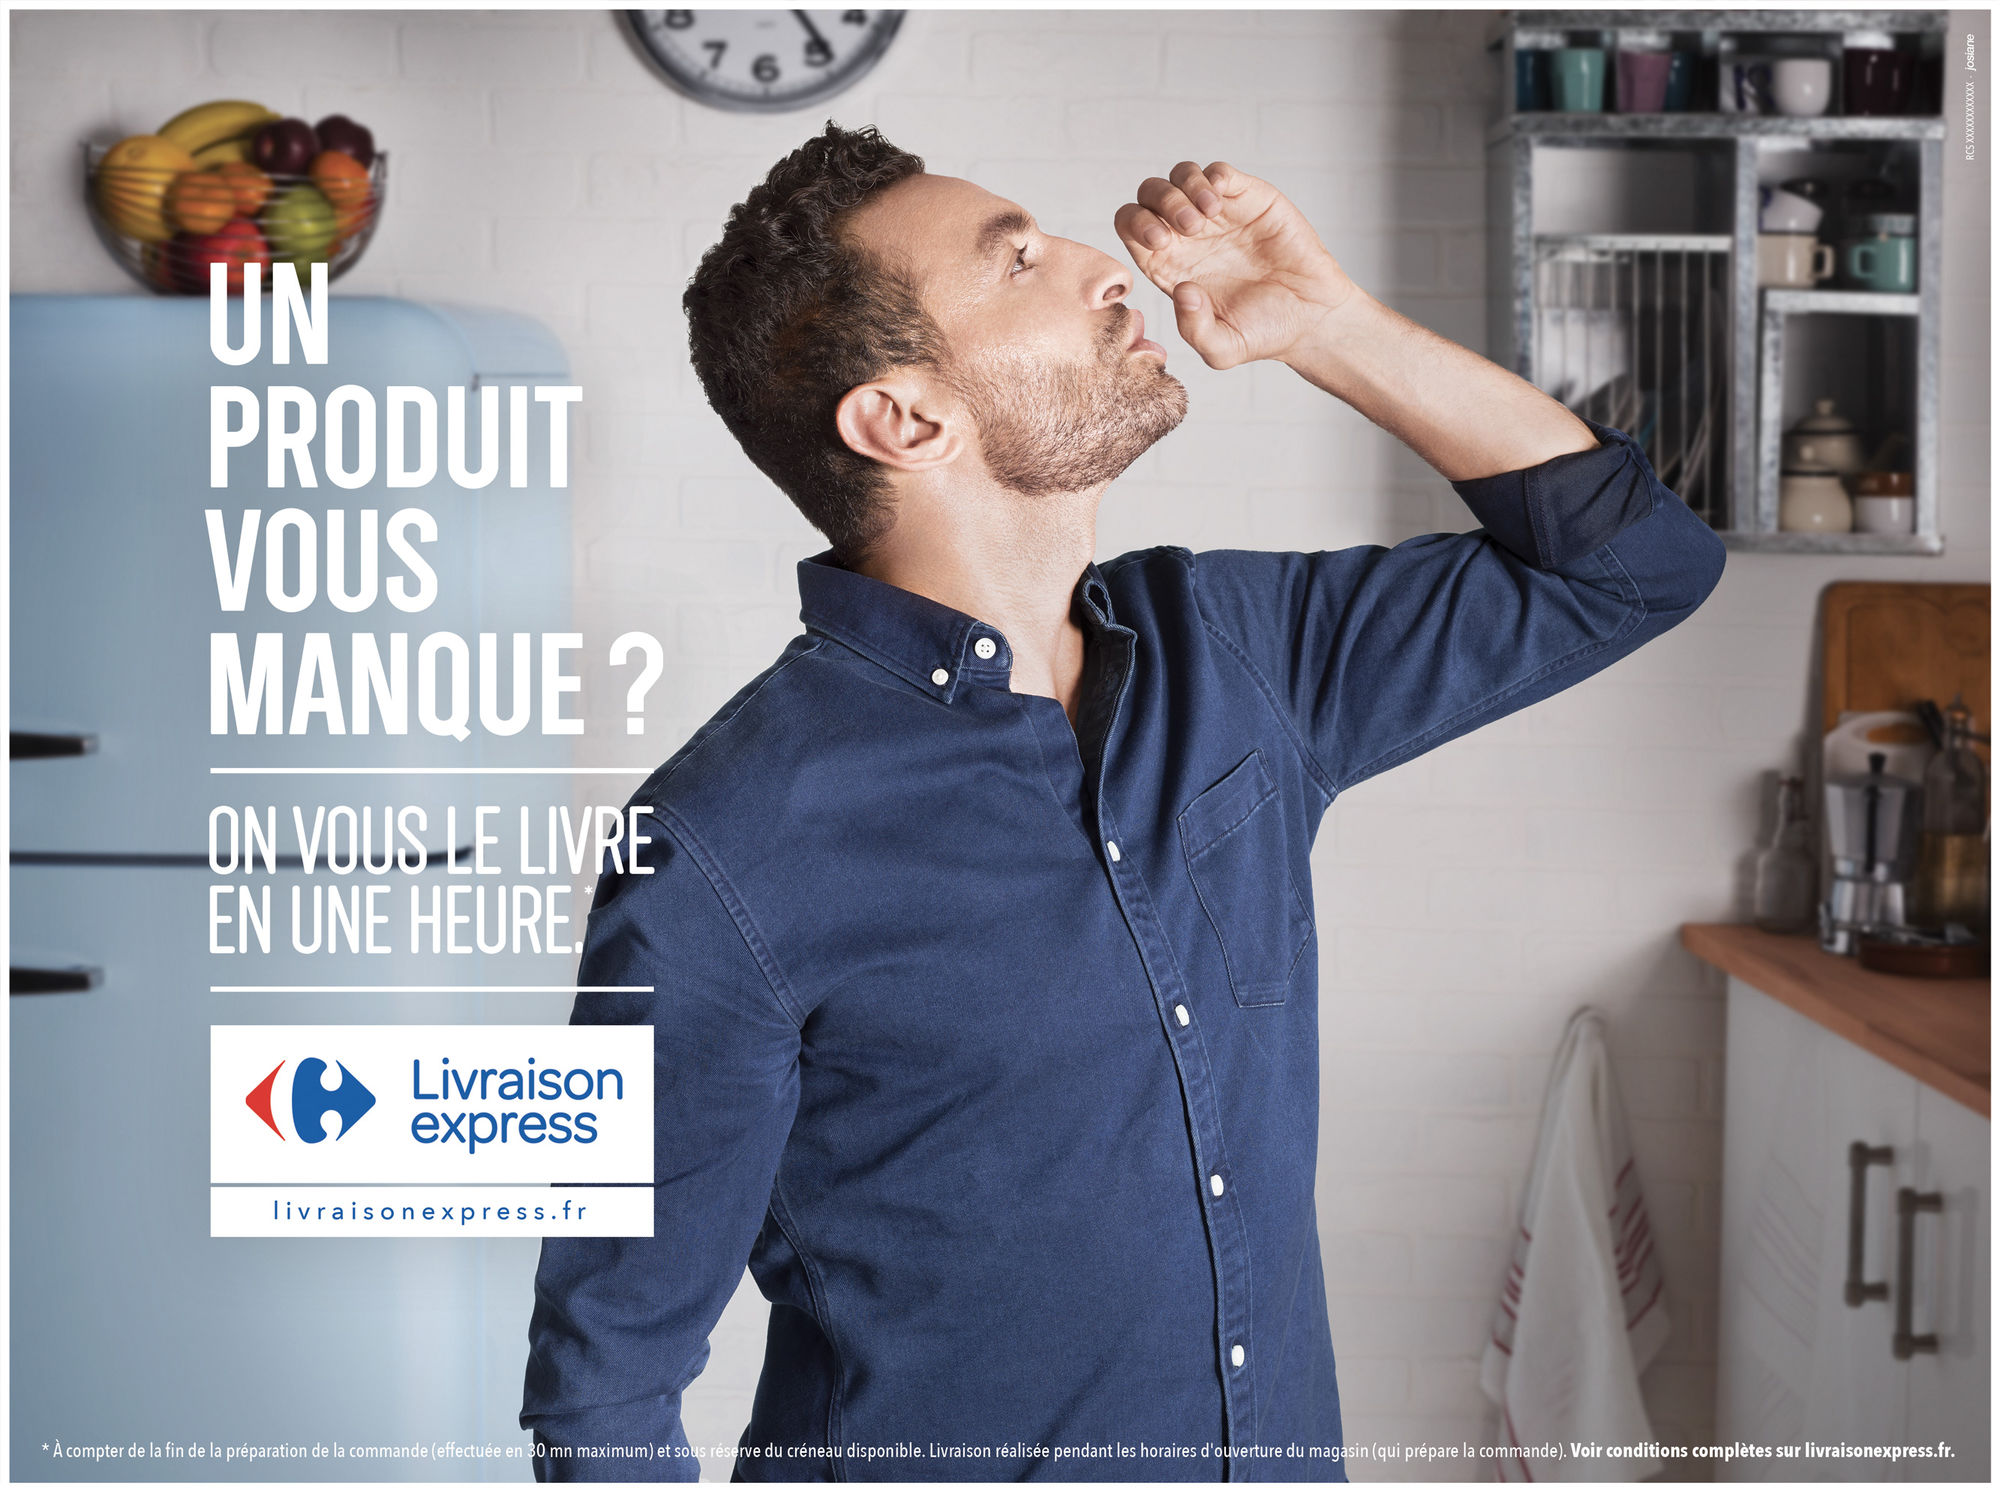 COSMOPOLA - MARC THIROUIN - Carrefour Campaign